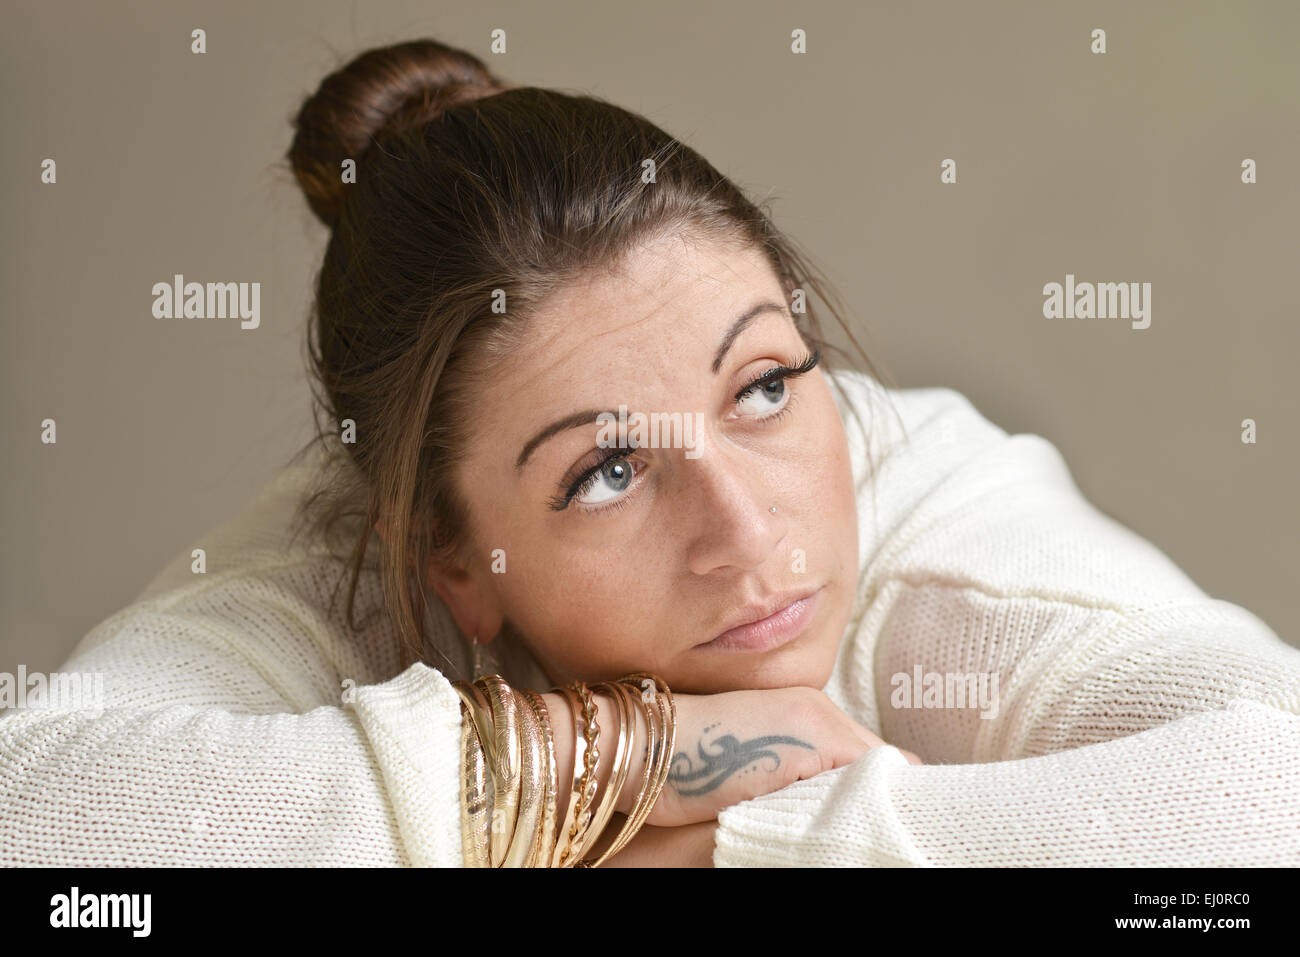 Young woman looking up sad and depressed - Stock Image